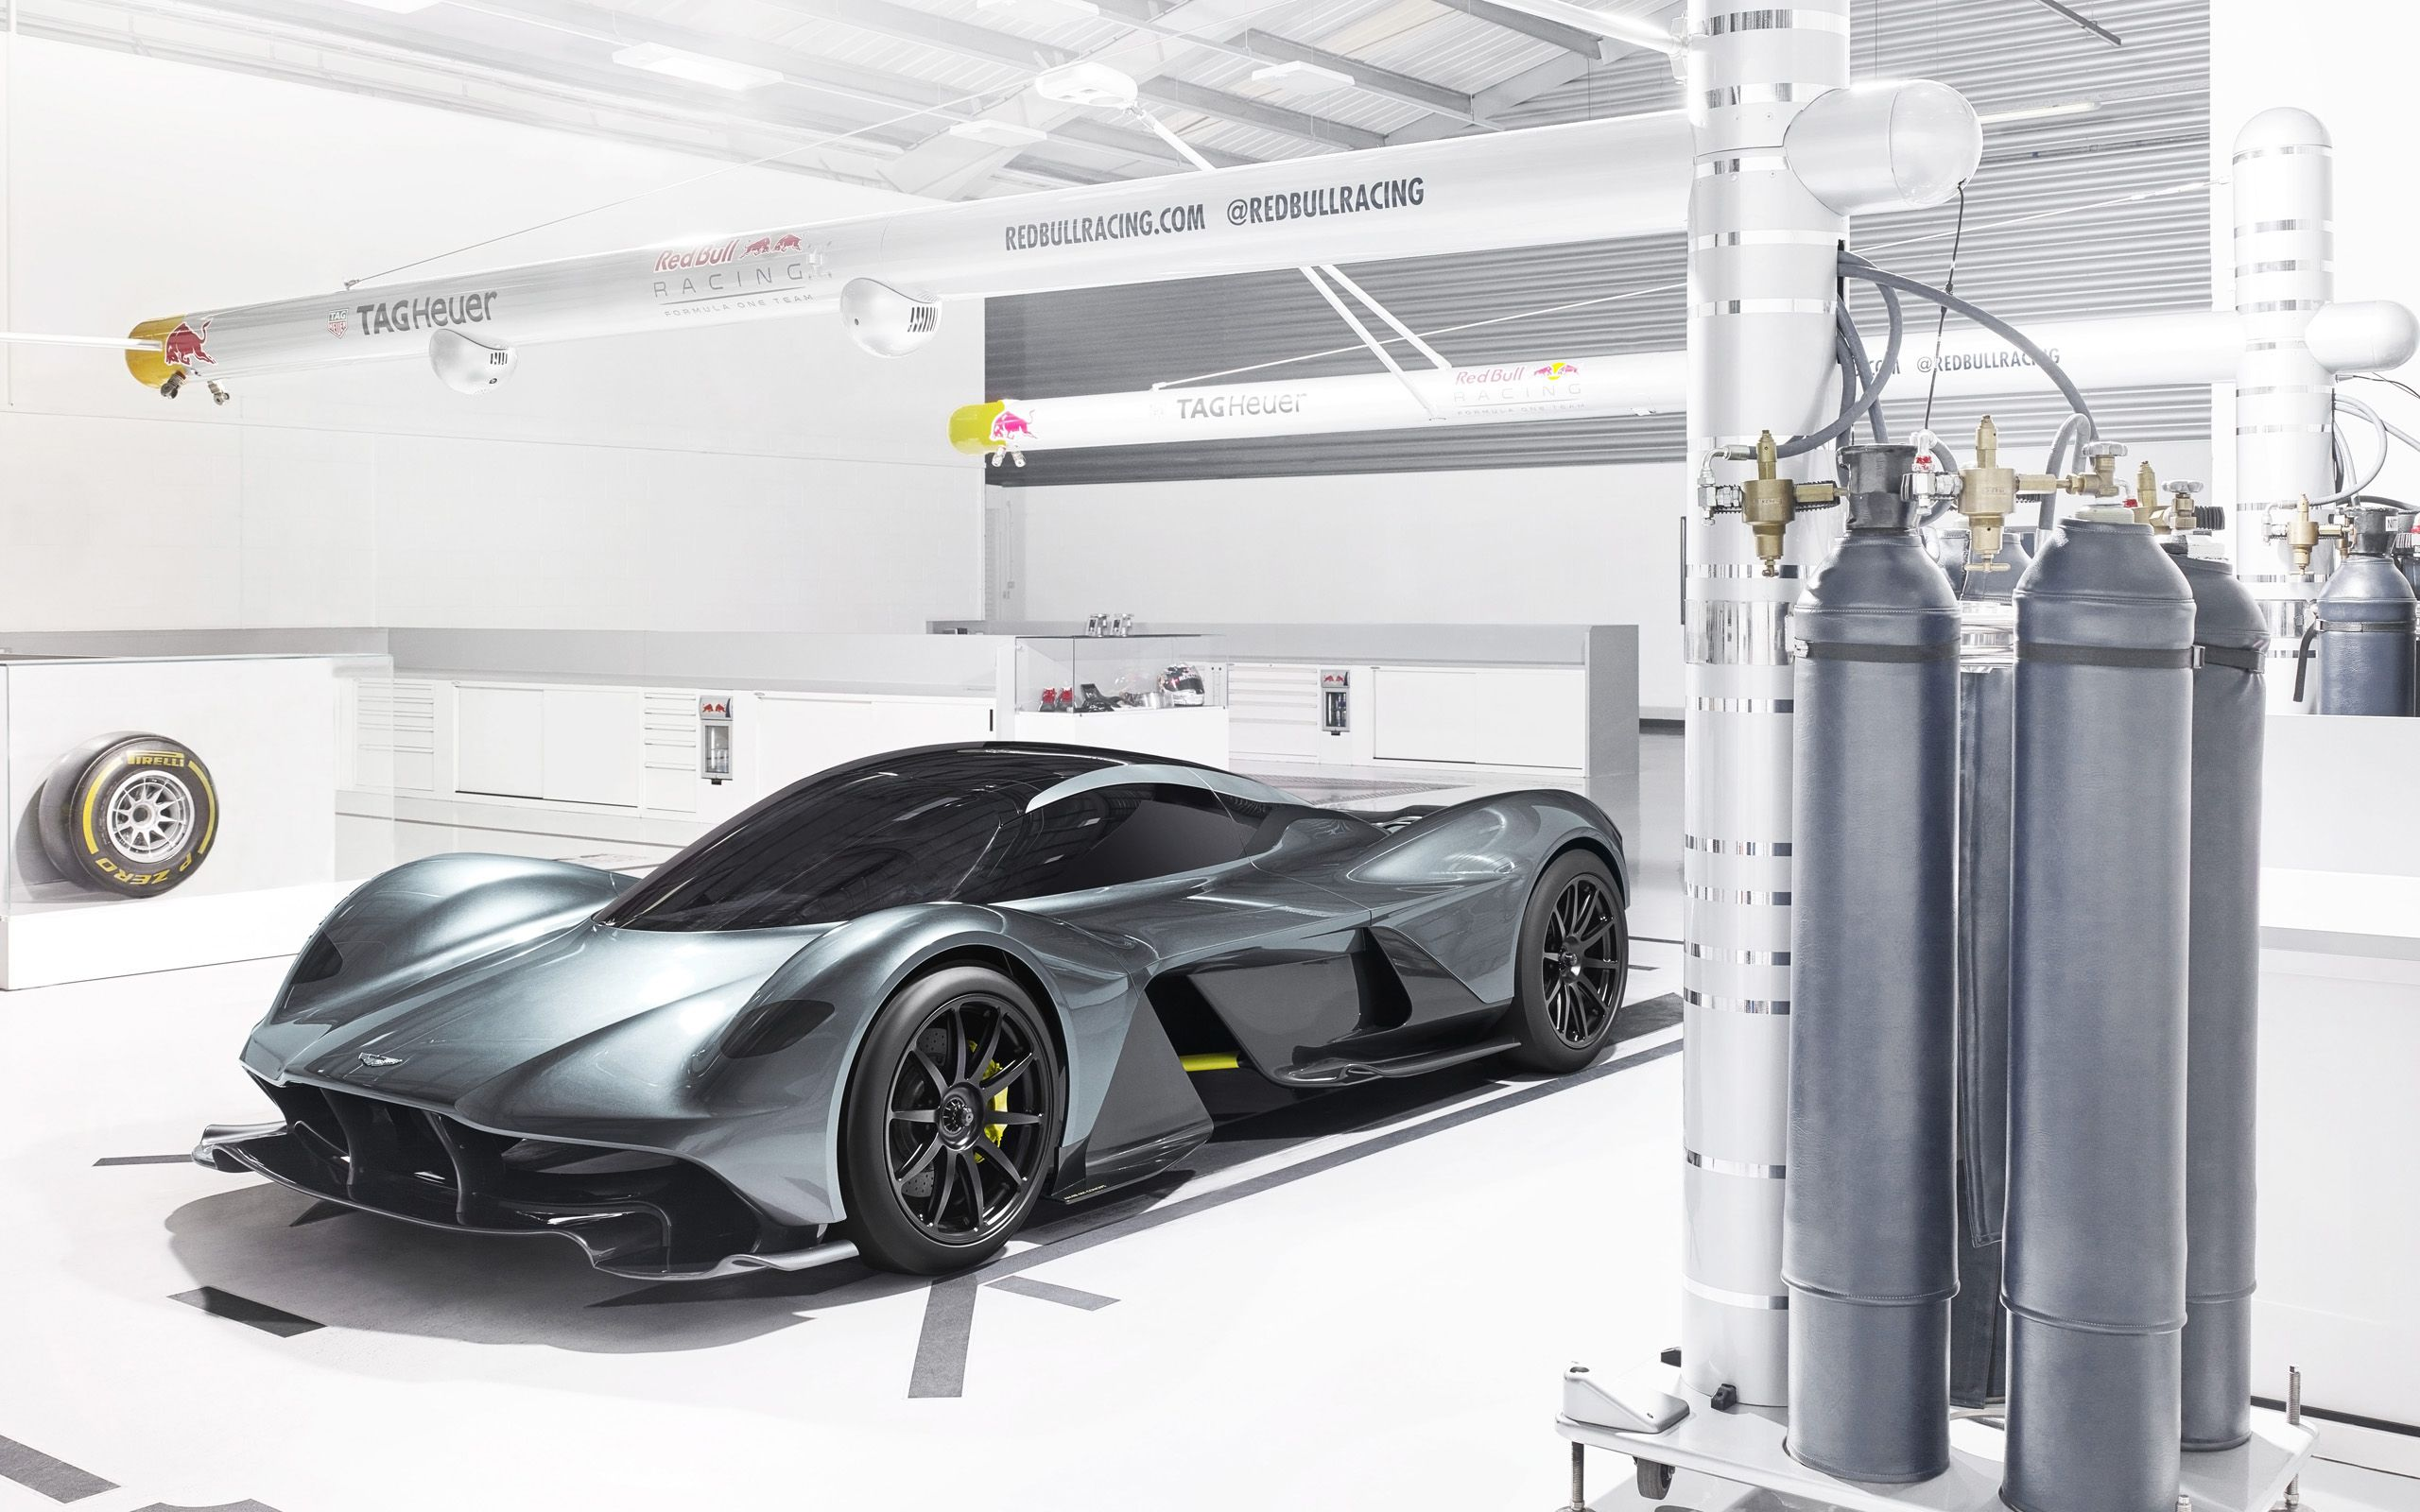 Wallpapers Aston Martin, Red Bull AM